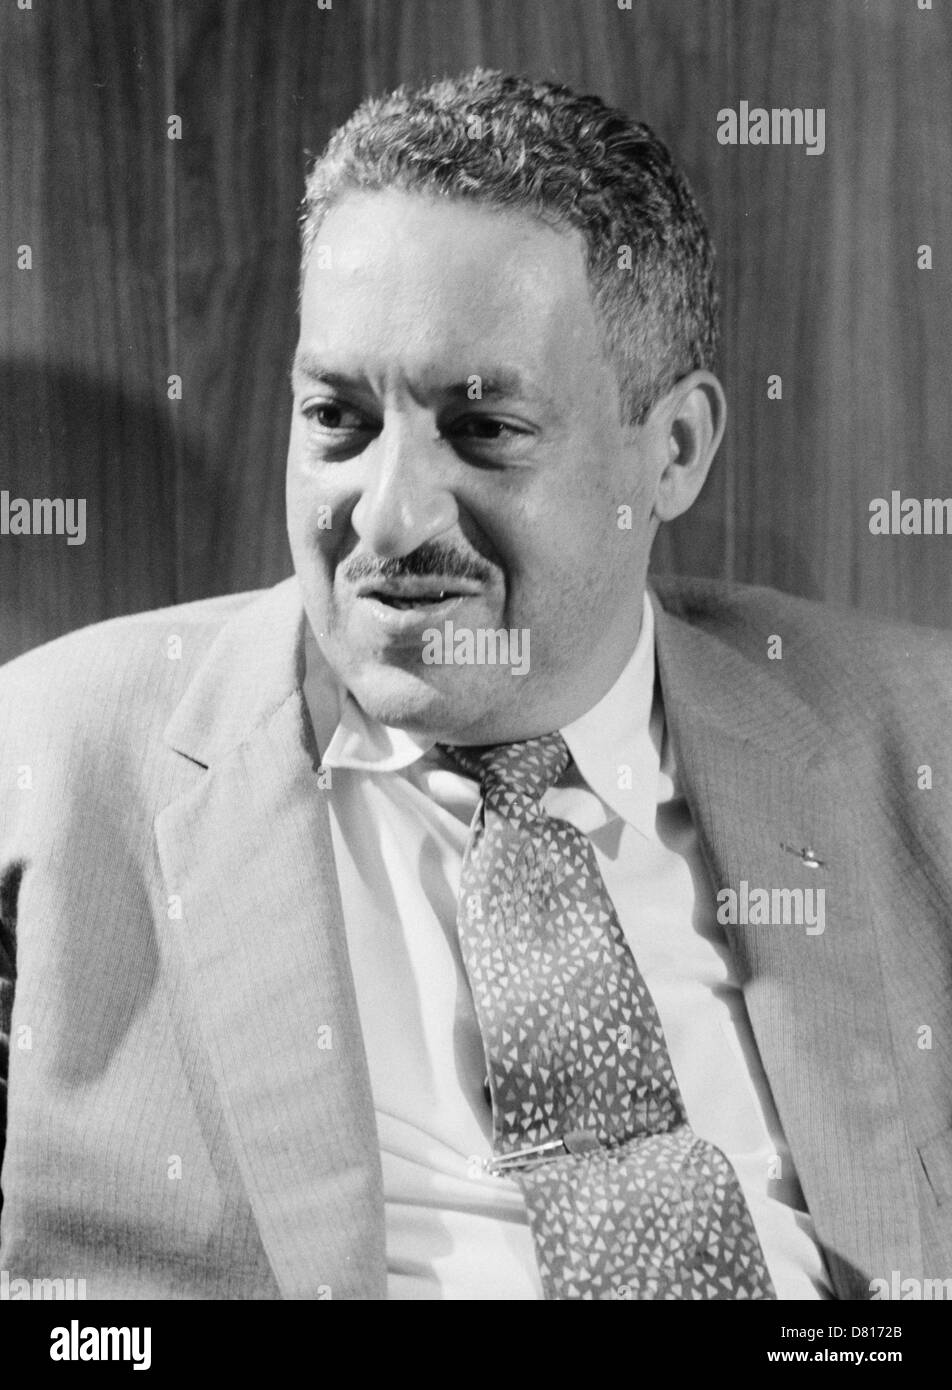 Thurgood Marshall, Associate Justice of the United States Supreme Court - Stock Image